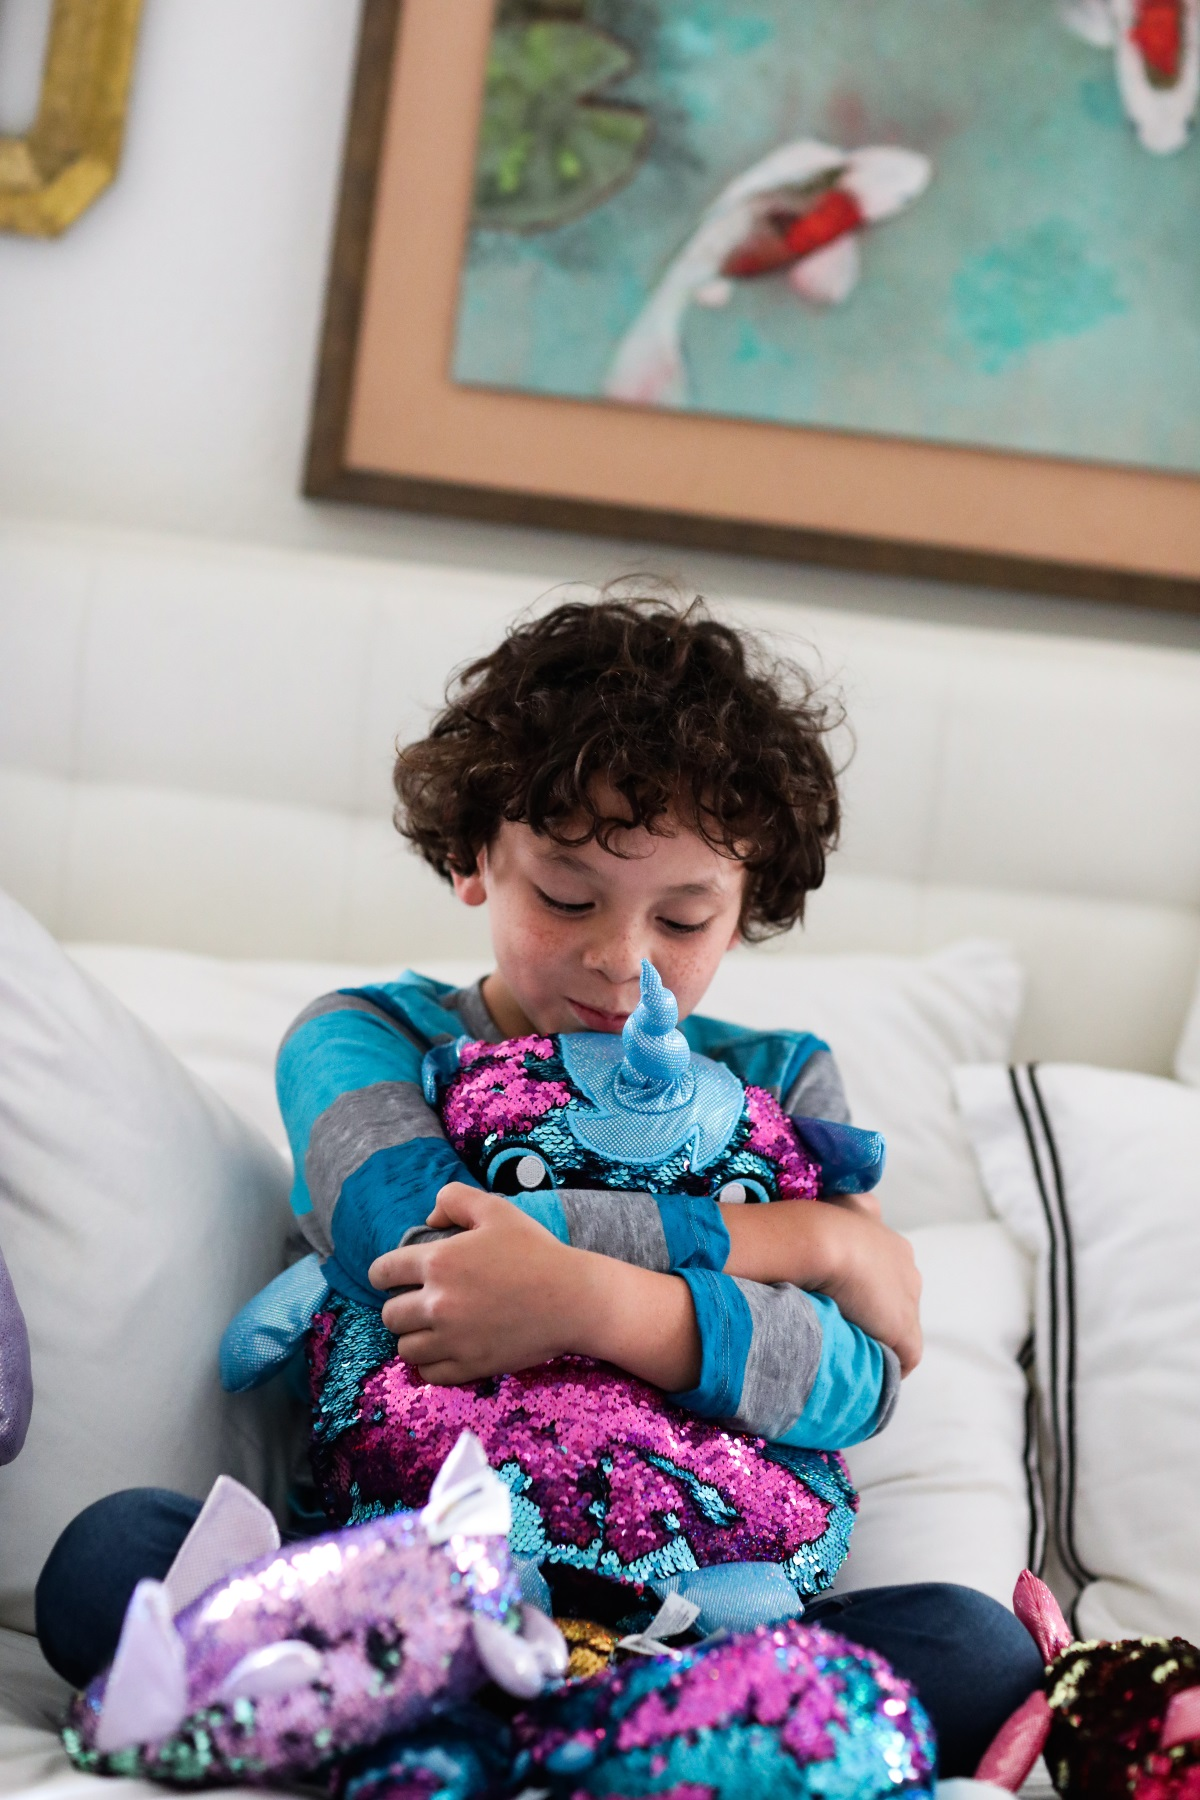 Have you ever wondered if plush toys are important for your children? Orange County Lifestyle blogger Debbie Savage is sharing her thoughts on why plush toys are a must for kids!